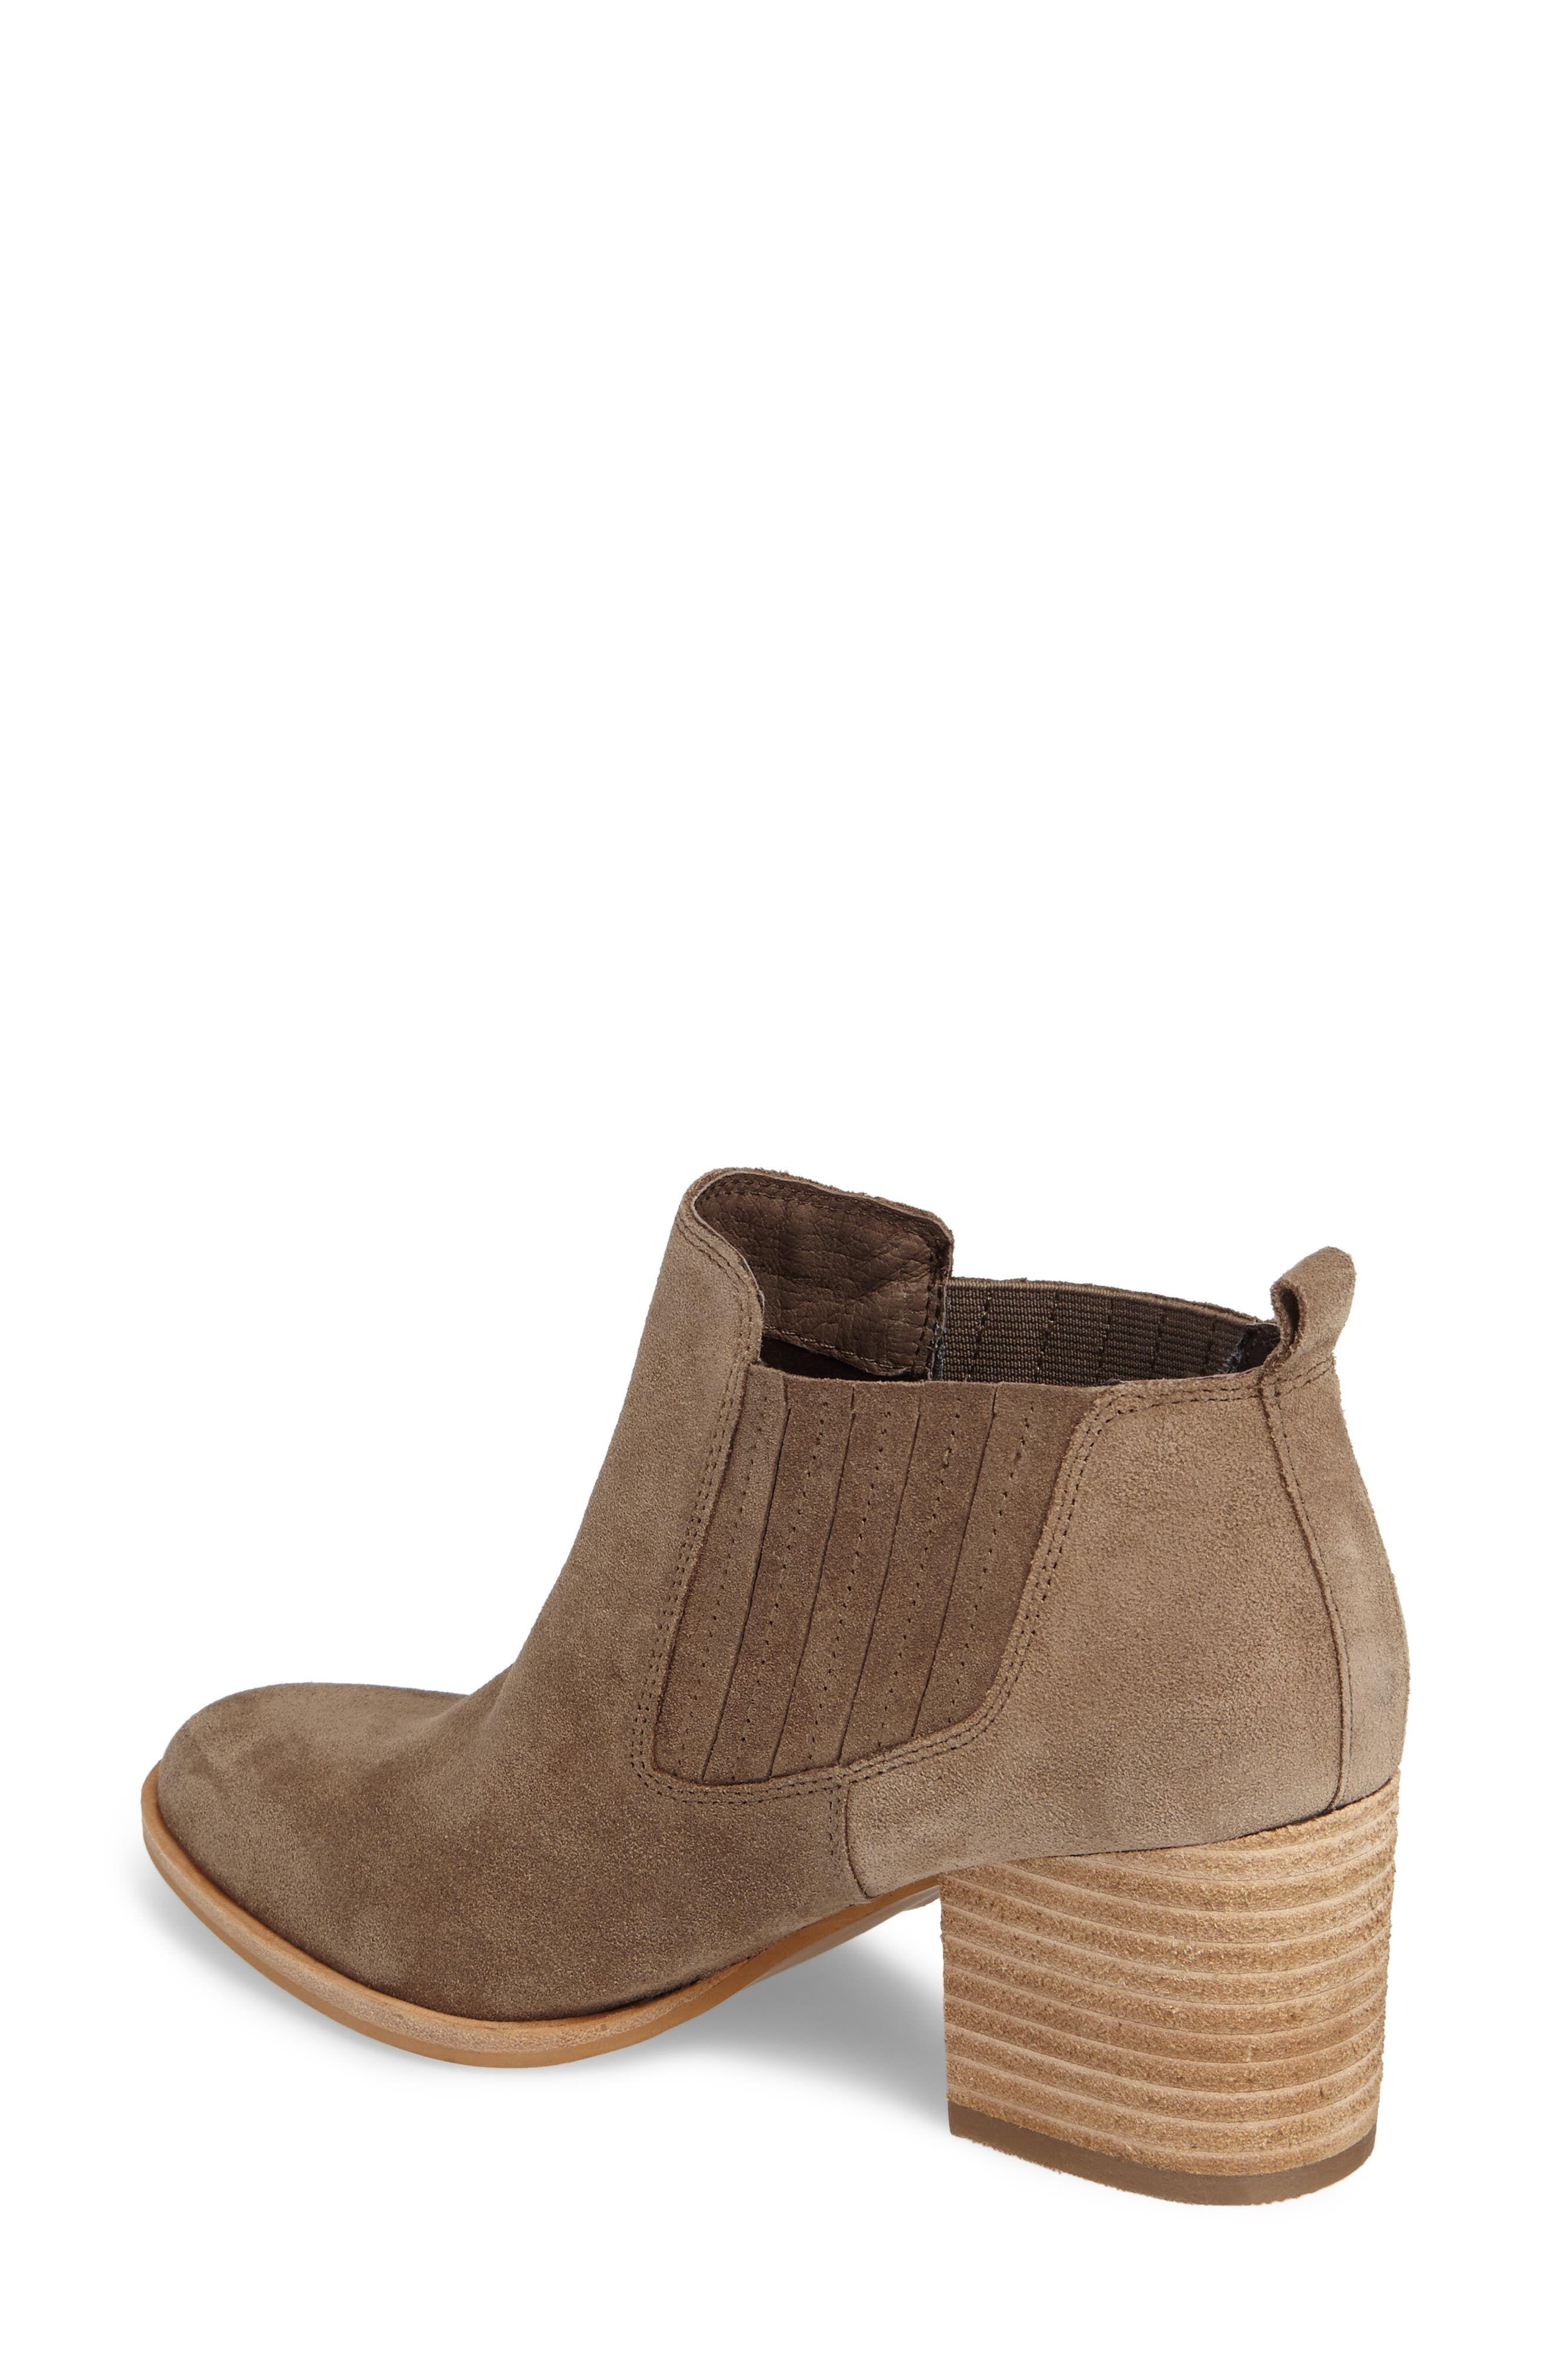 Olicia Gored Bootie,                             Alternate thumbnail 2, color,                             MARMOTTA LIGHT GREY SUEDE